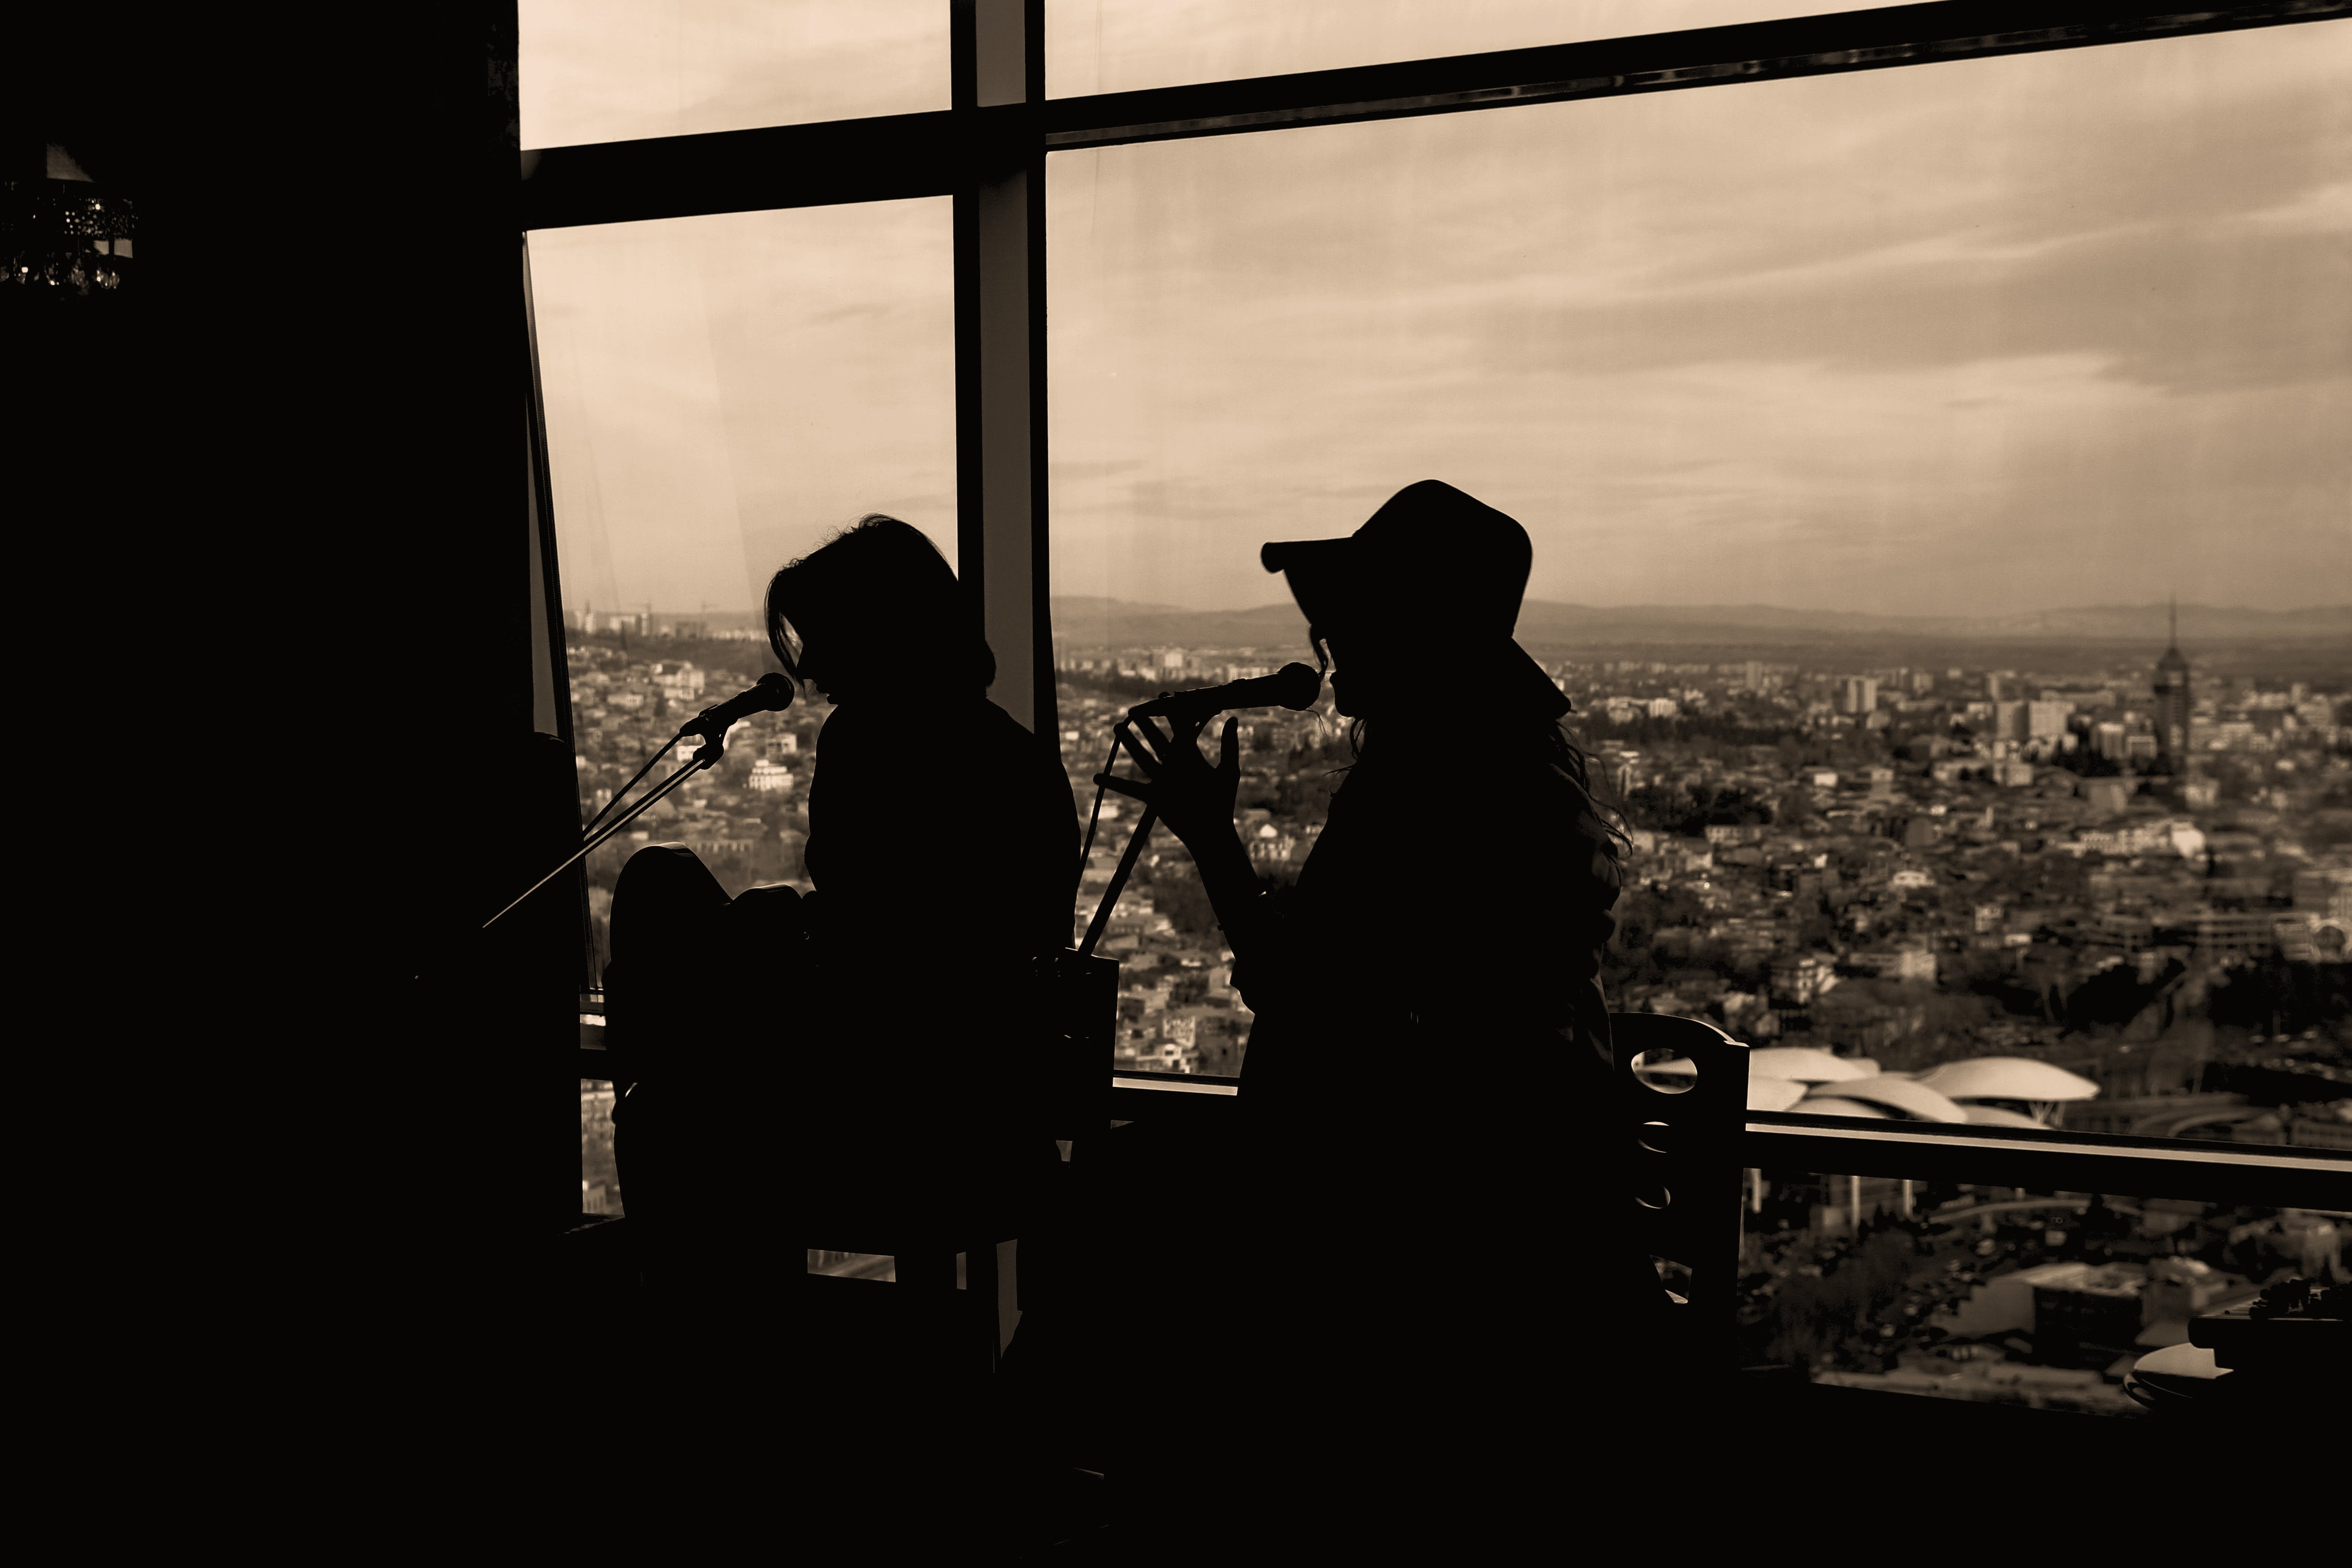 Silhouette of Two Women Singing in Sepia Photography